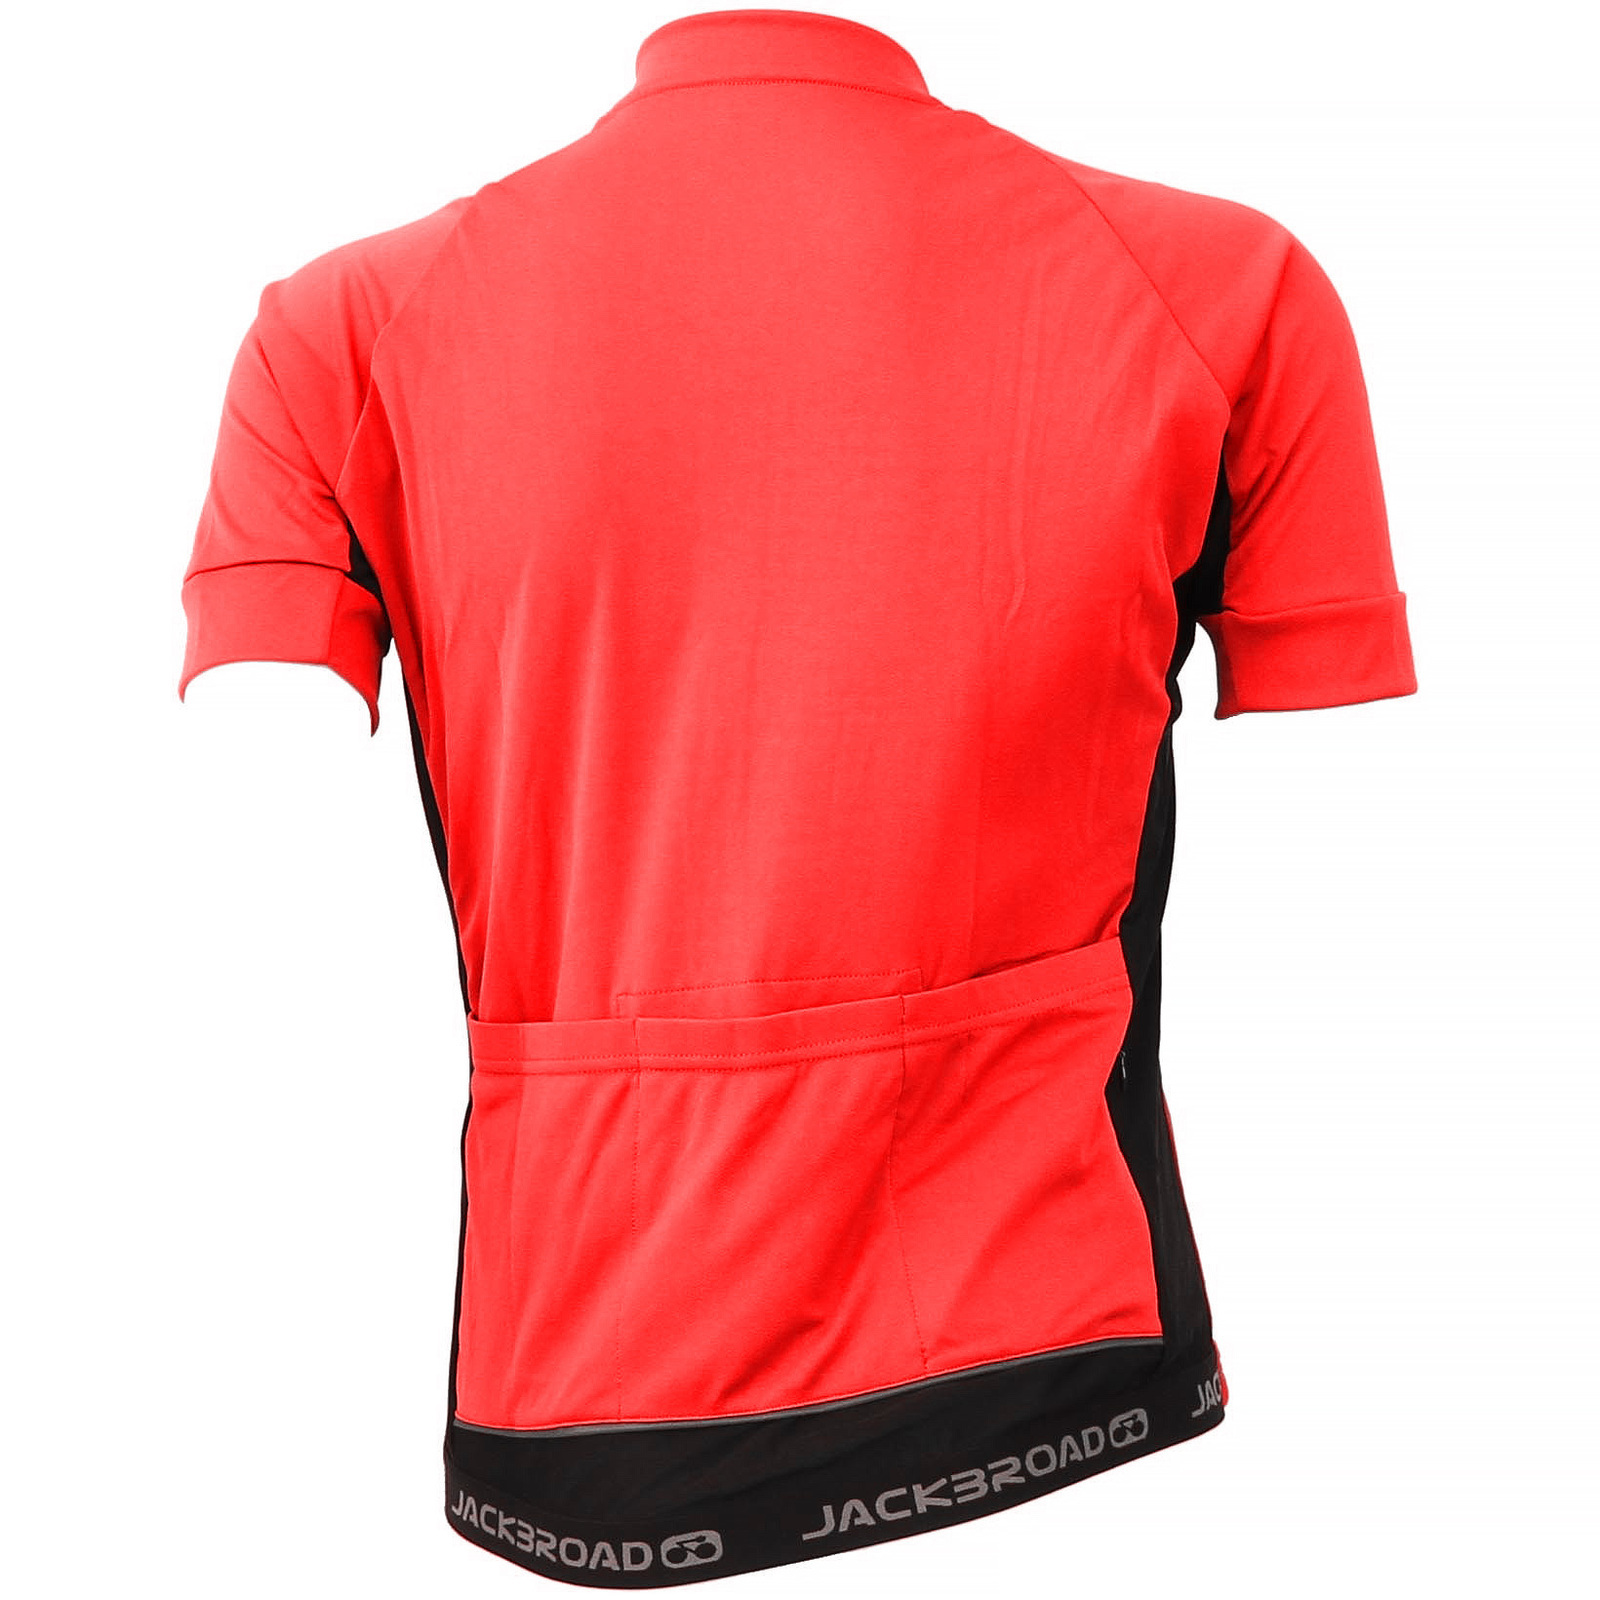 Jackbroad Premium Quality Bike Bicycle Cycling Short Sleeves Jersey Red